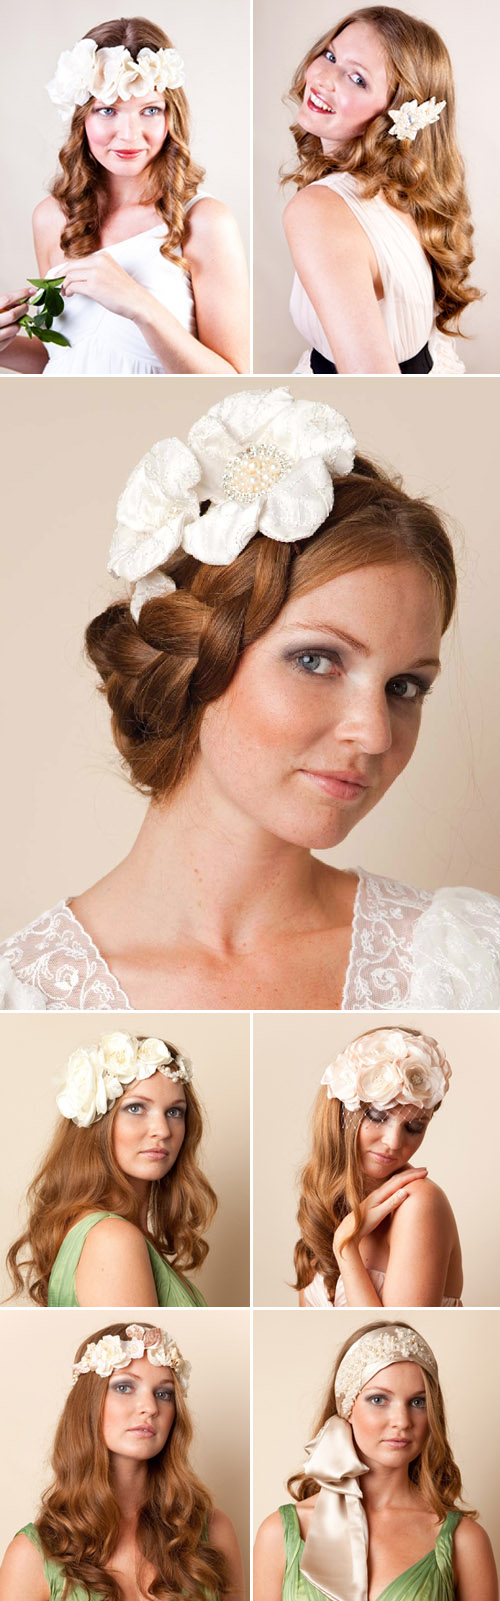 bridal hair accessories and veils from Jannie Baltzer, vintage inspired wedding head pieces